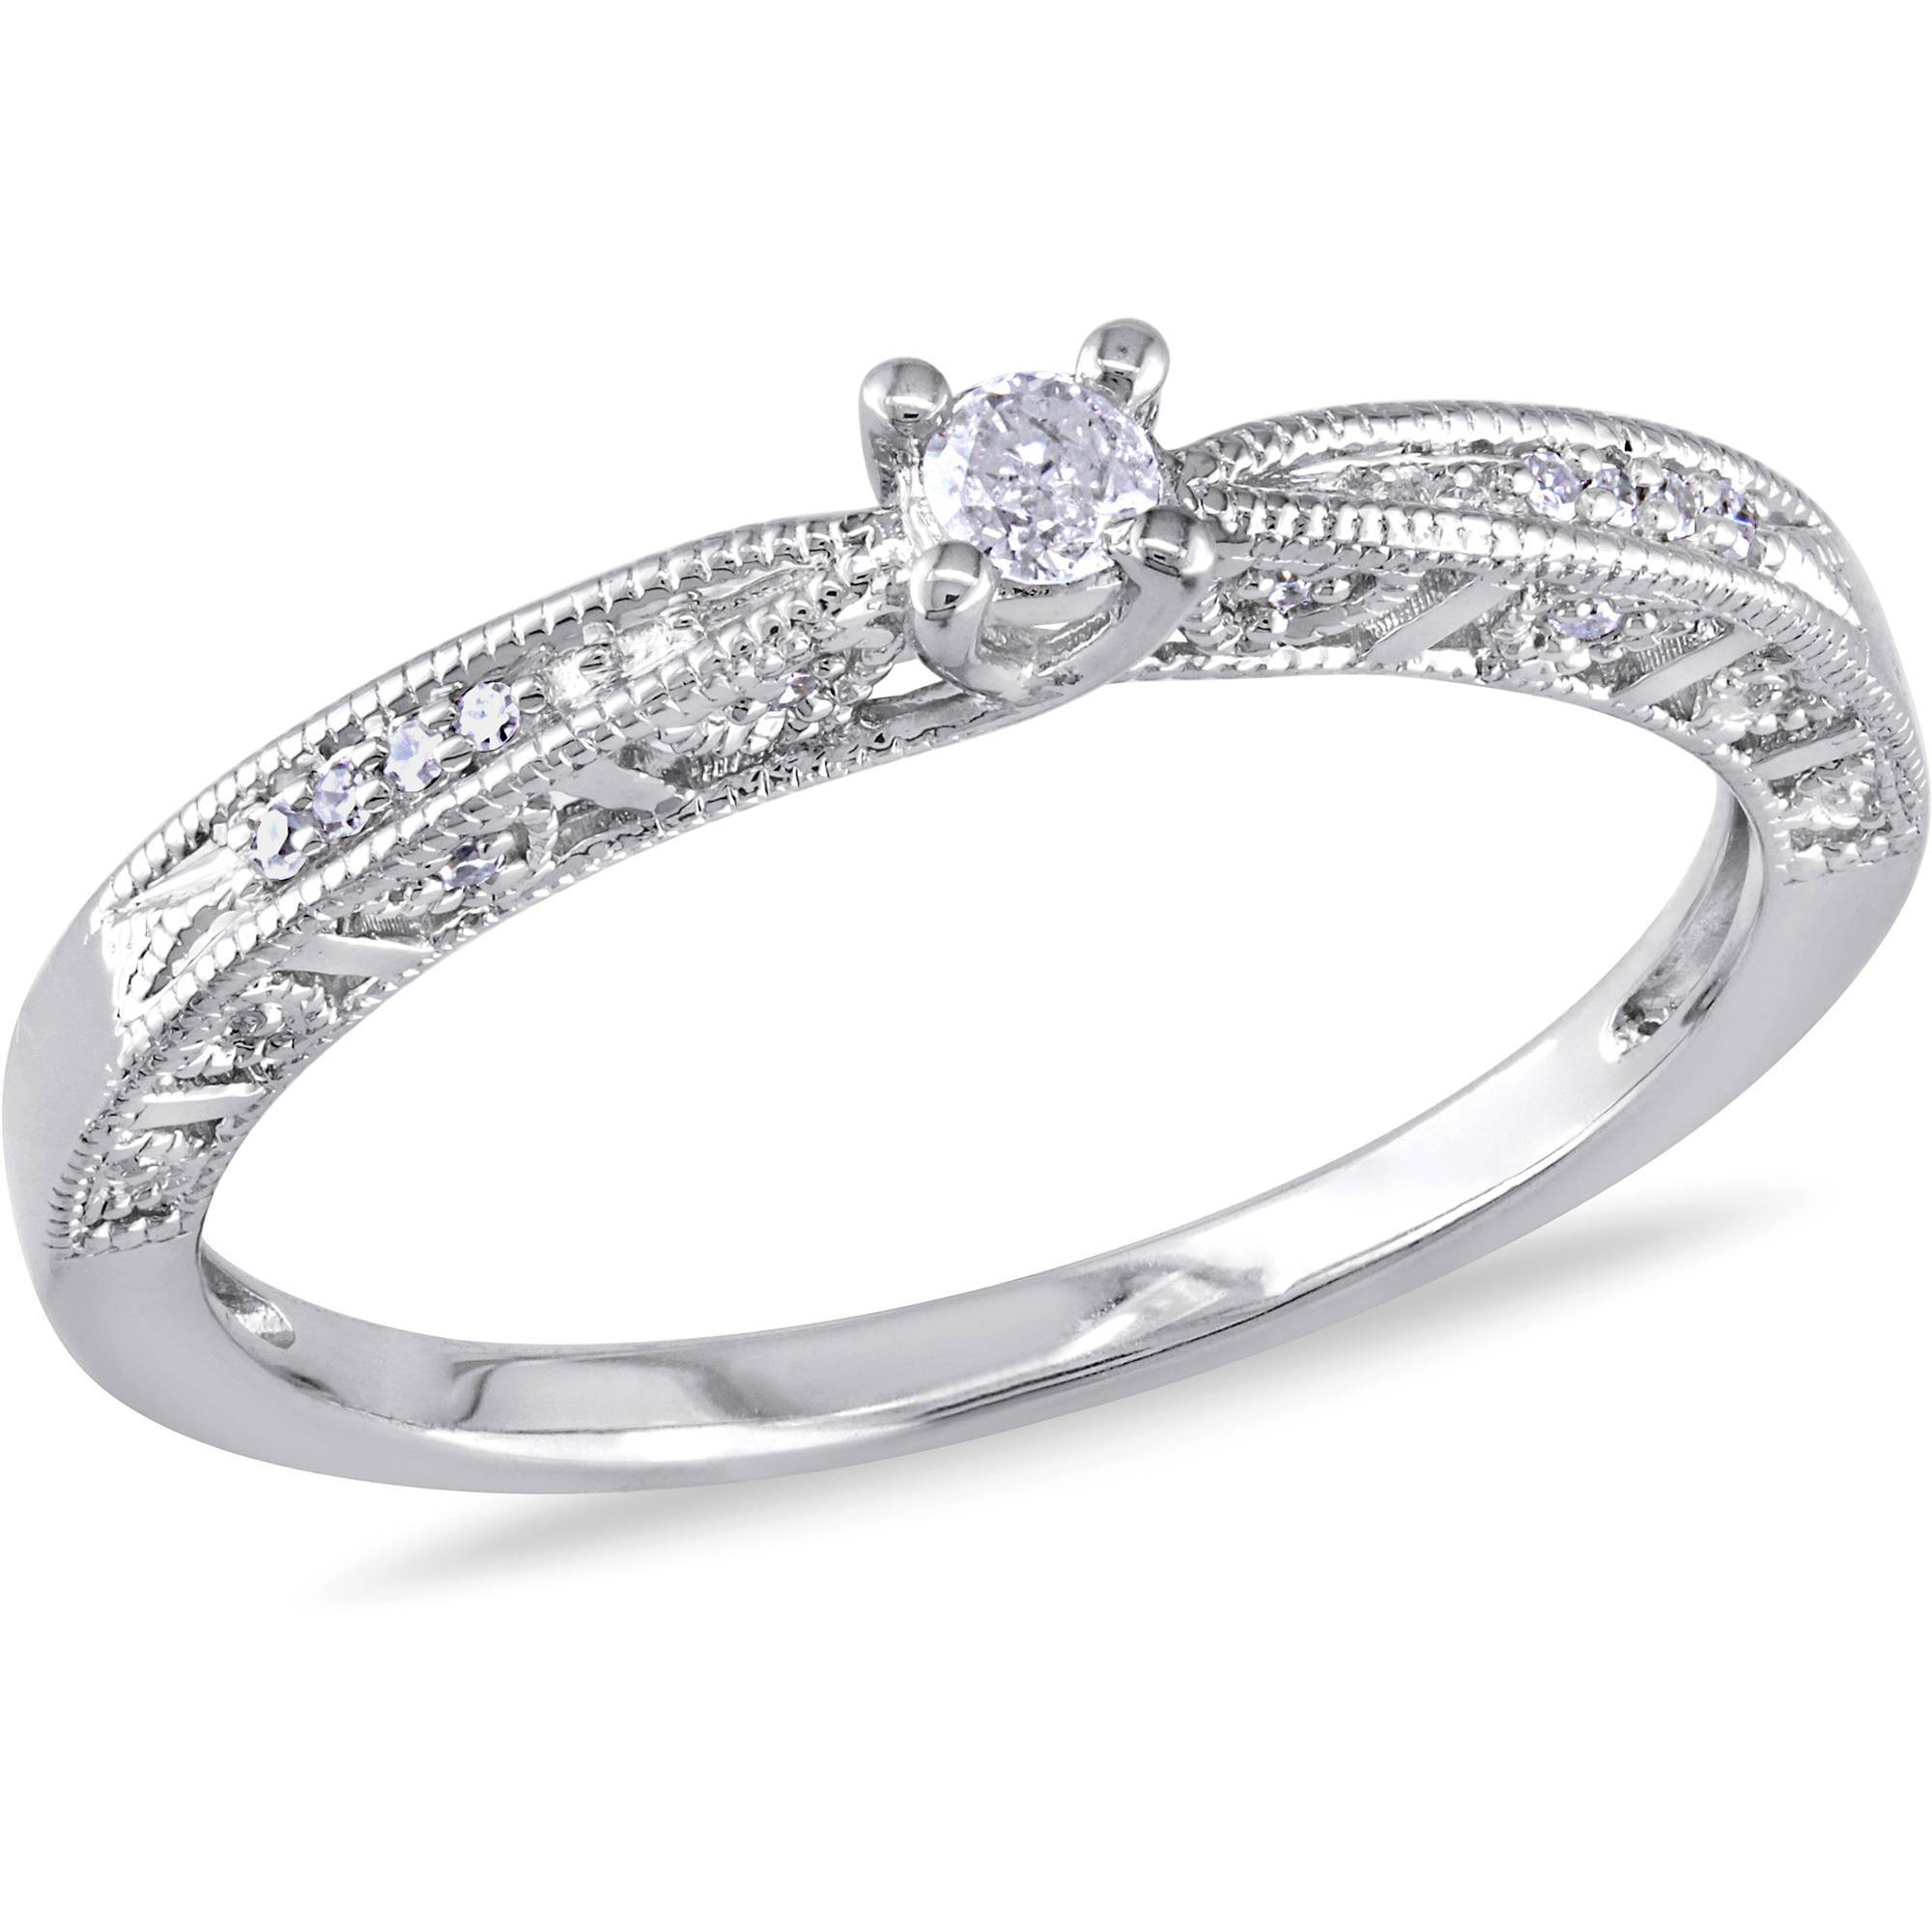 Walmart Wedding Rings | Wedding Ideas Pertaining To Walmart White Gold Wedding Bands (View 11 of 15)